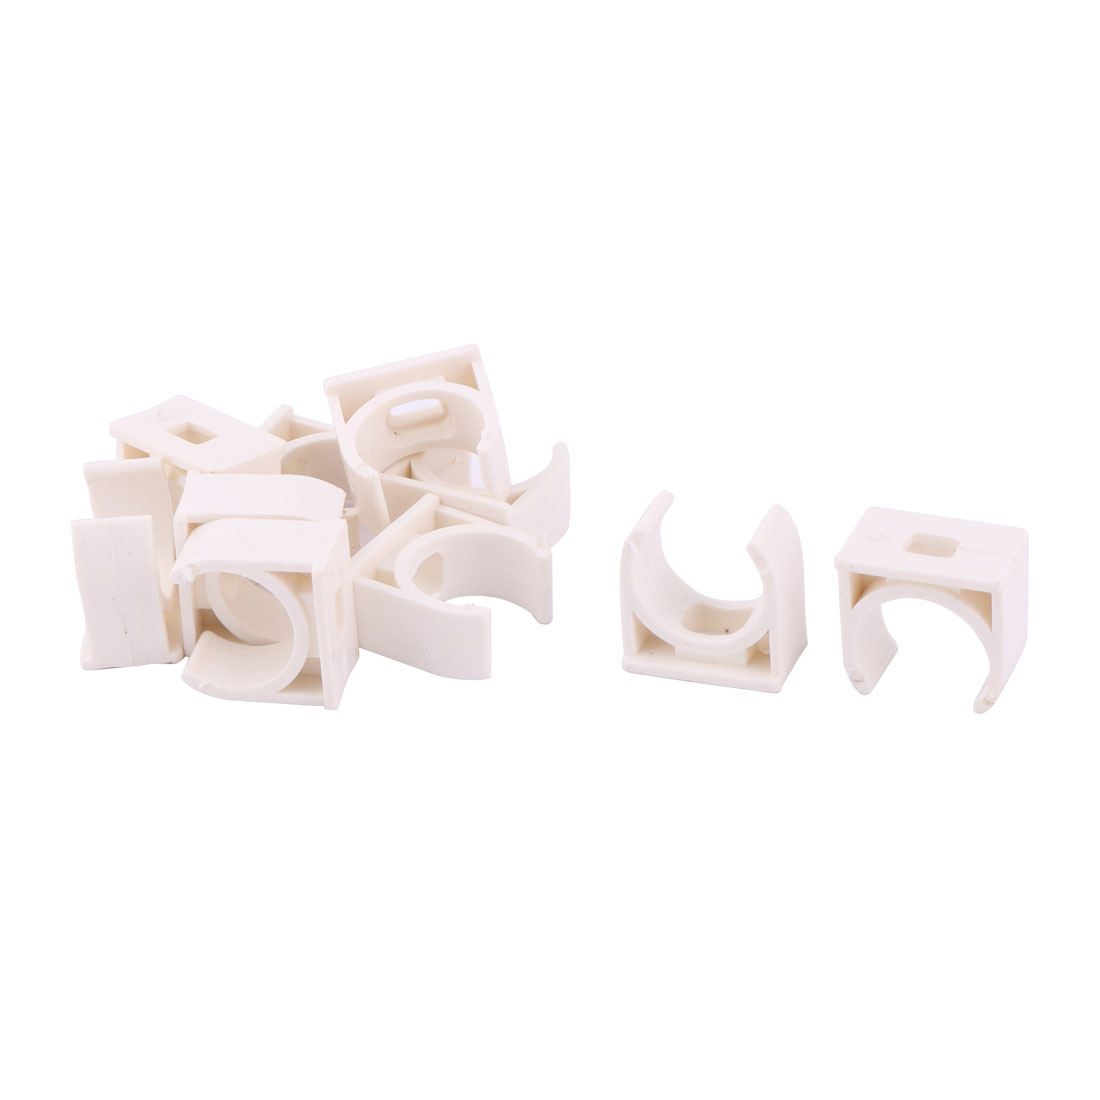 Home PVC U Shaped Water Supply Pipe Holder Stand Clamps White 20mm Dia 10pcs